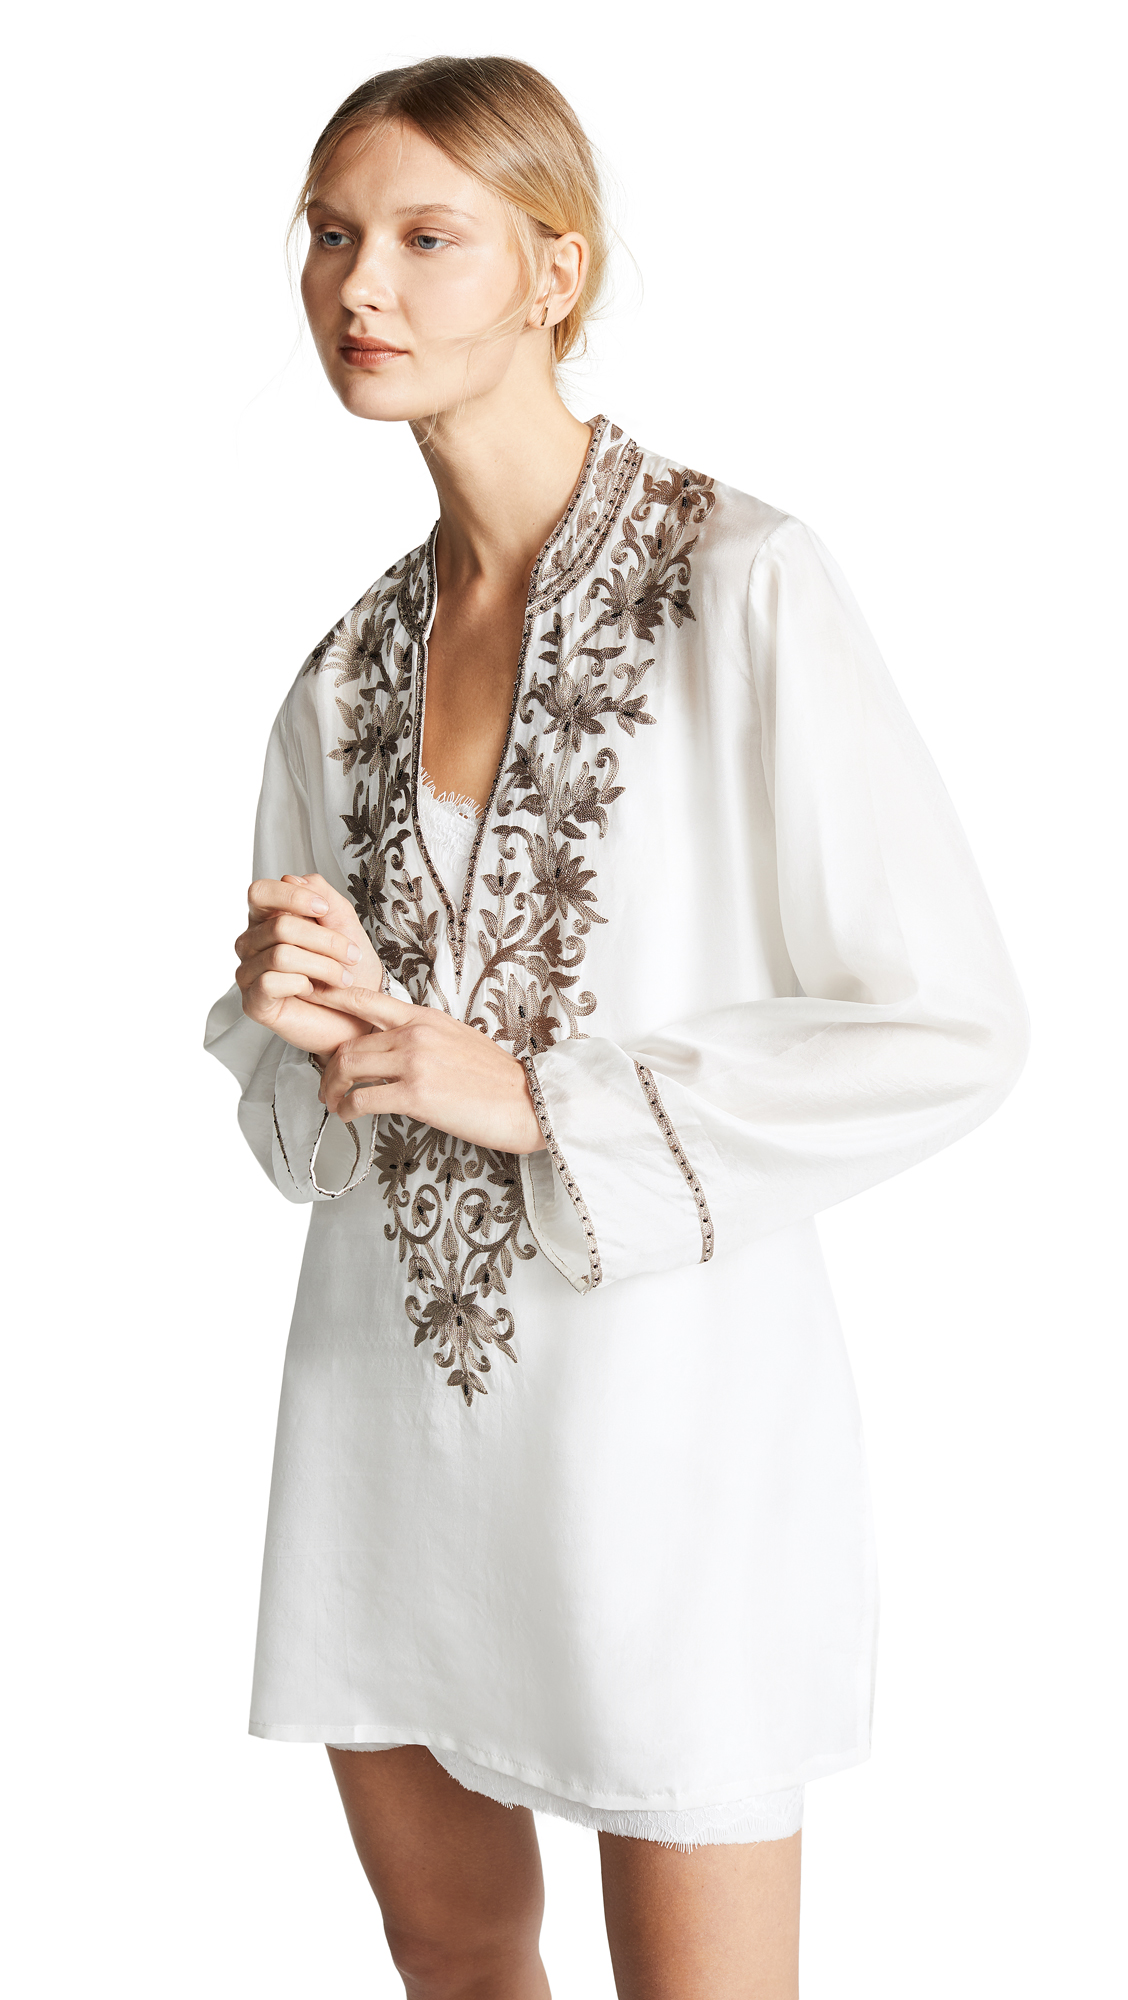 LOYD/FORD Hand Embroidered Tunic Dress in Ivory